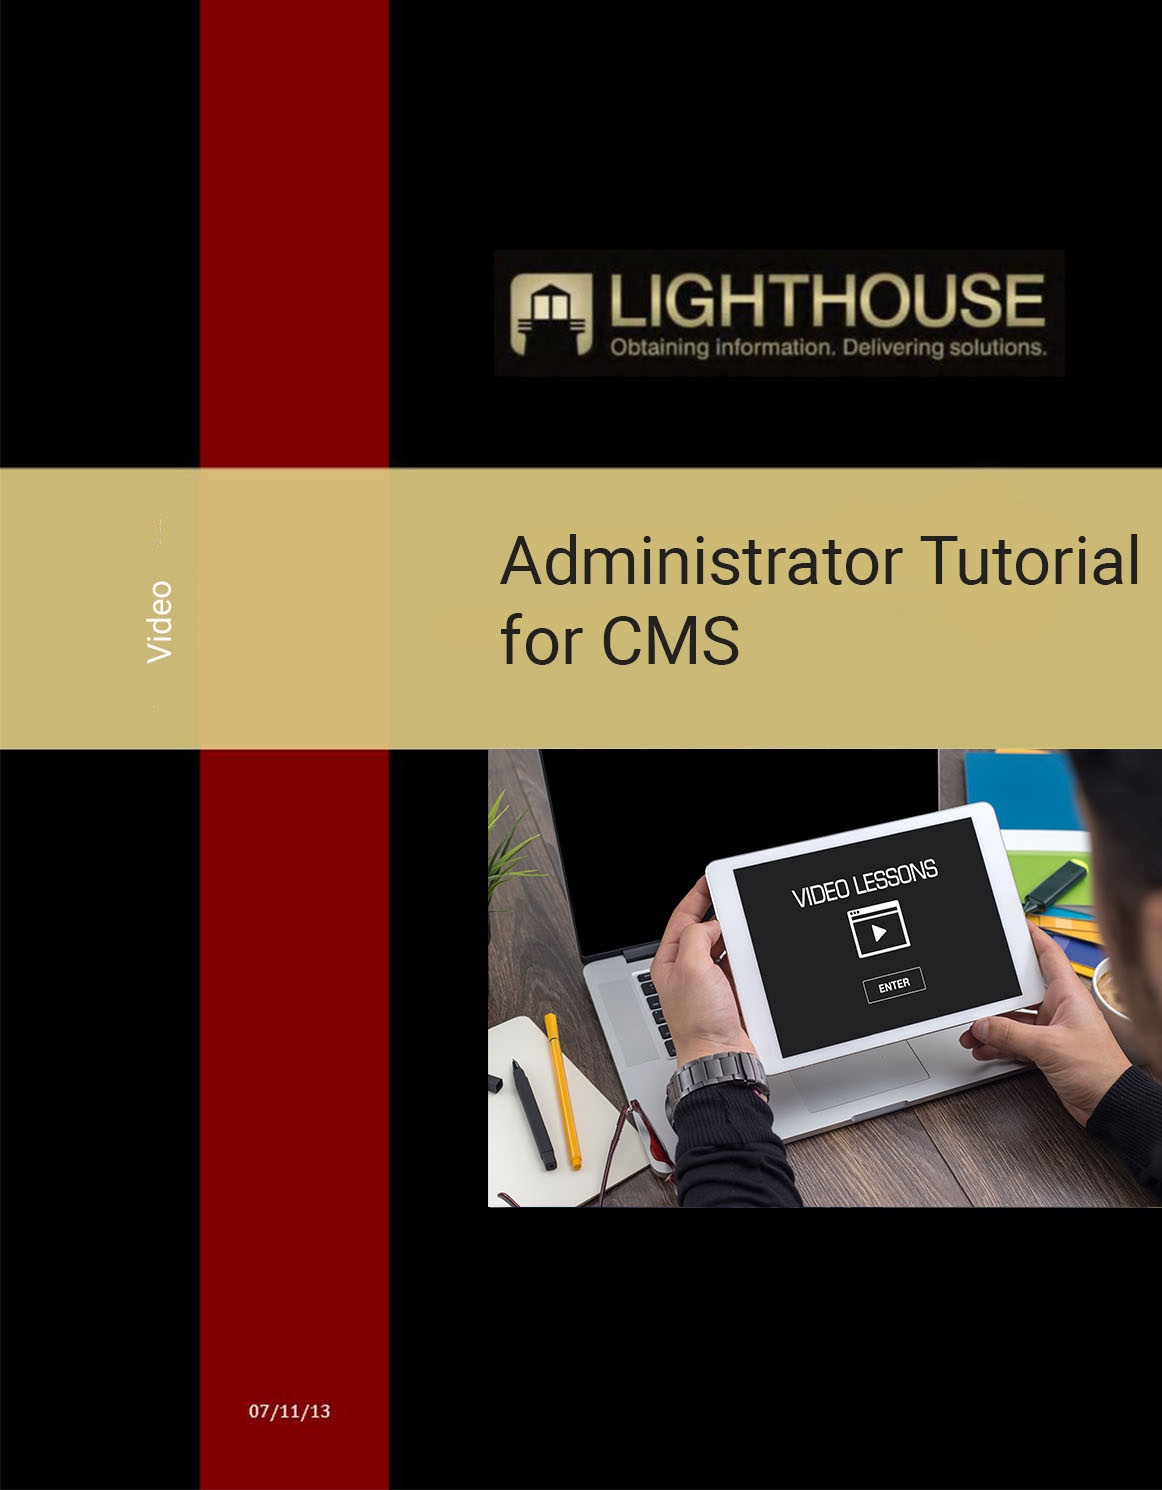 Administrator Tutorial Video for CMS